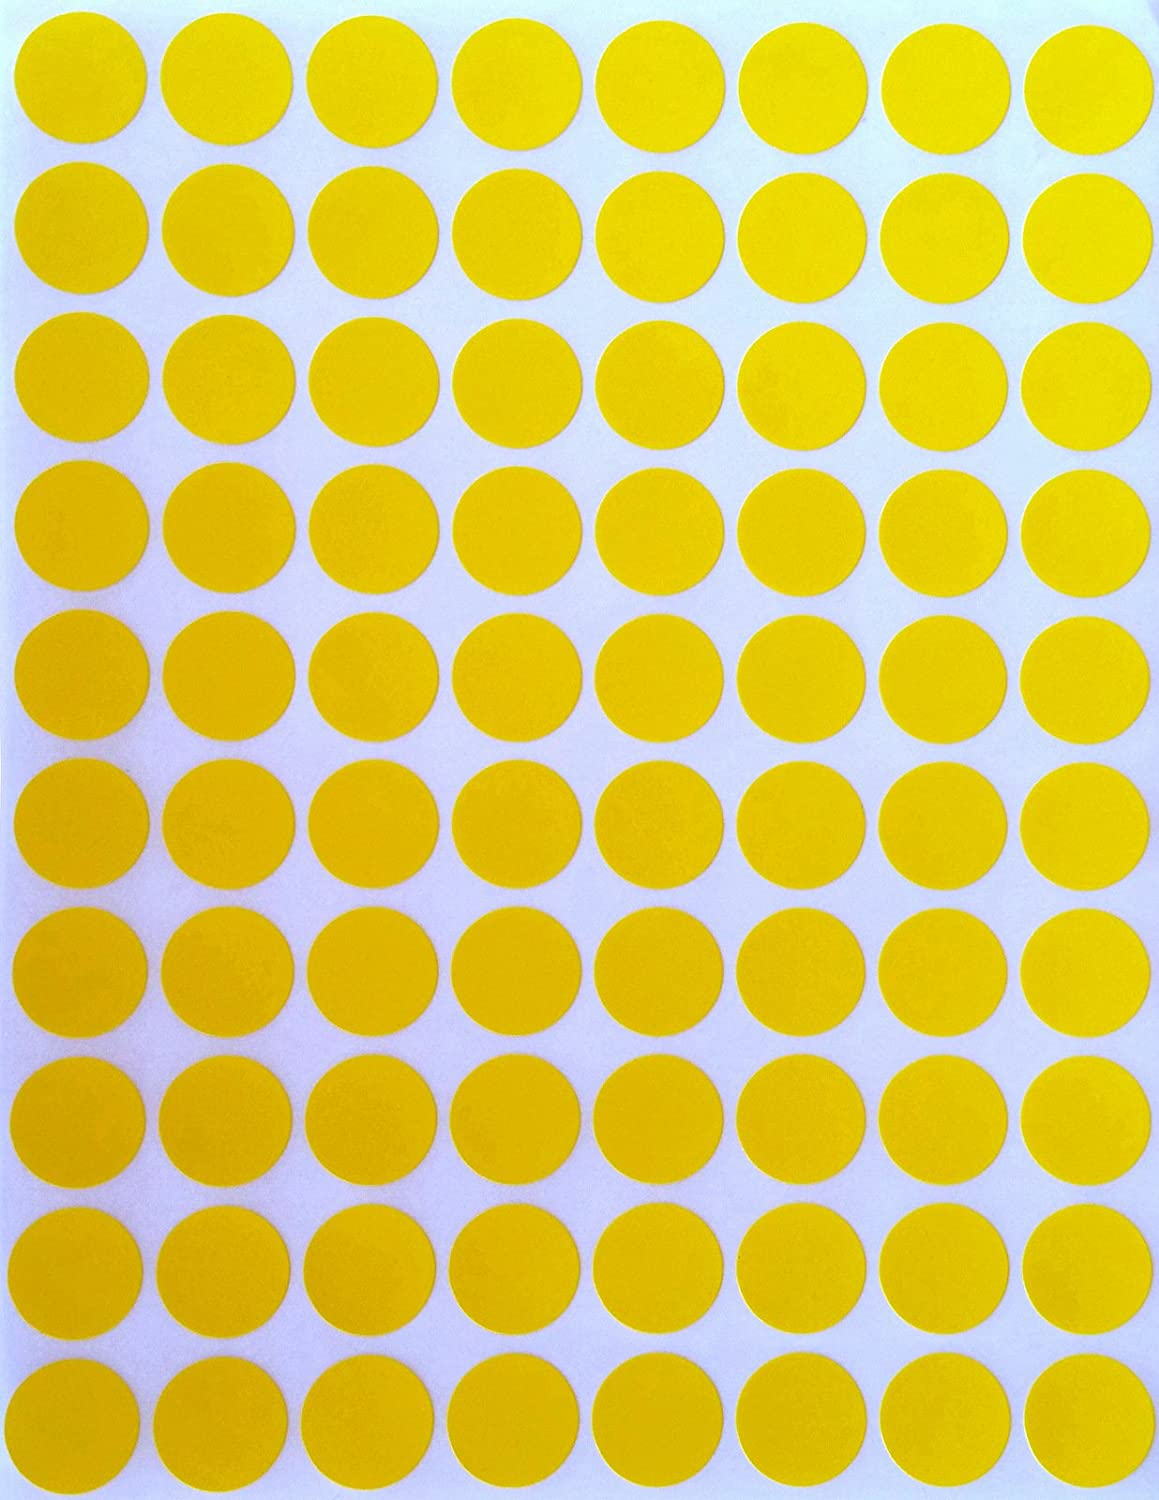 Color Coding Labels 1//2 Round 13mm Diameter 1200 Pack 0.5 Half inch inch Rounds Brown Sticker Dot Stickers -